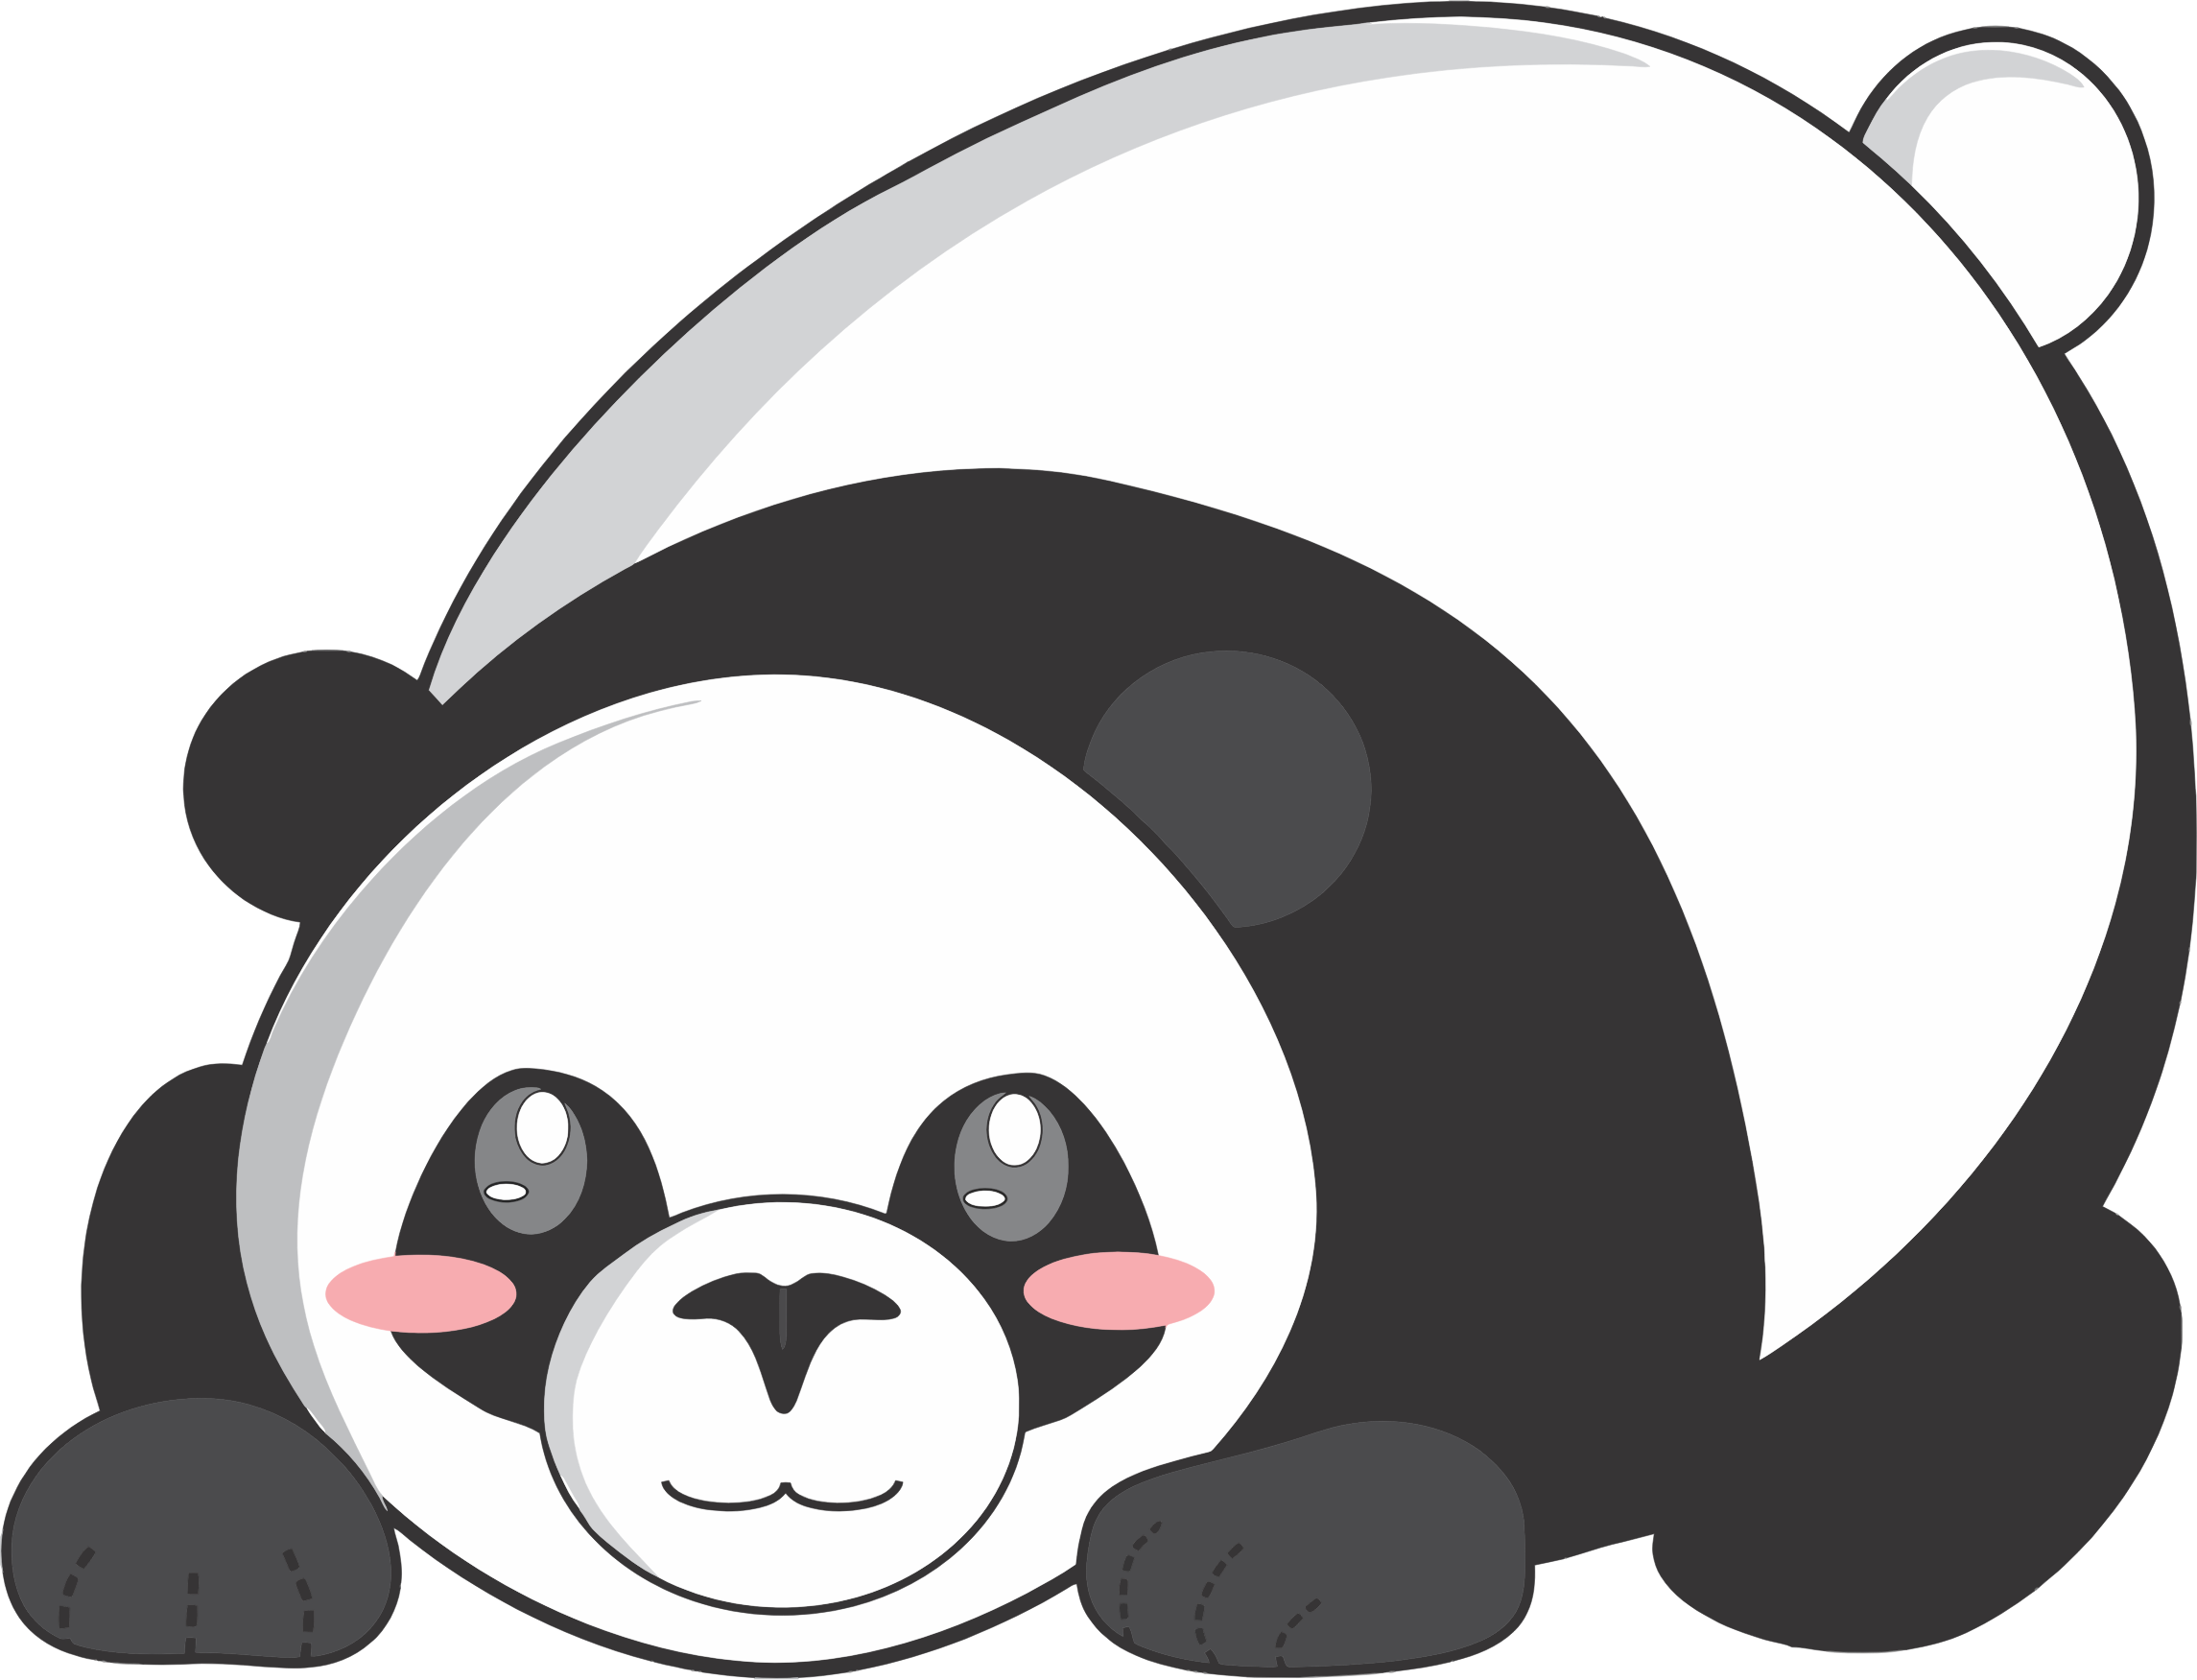 Bashful Cartoon Panda by GDJ